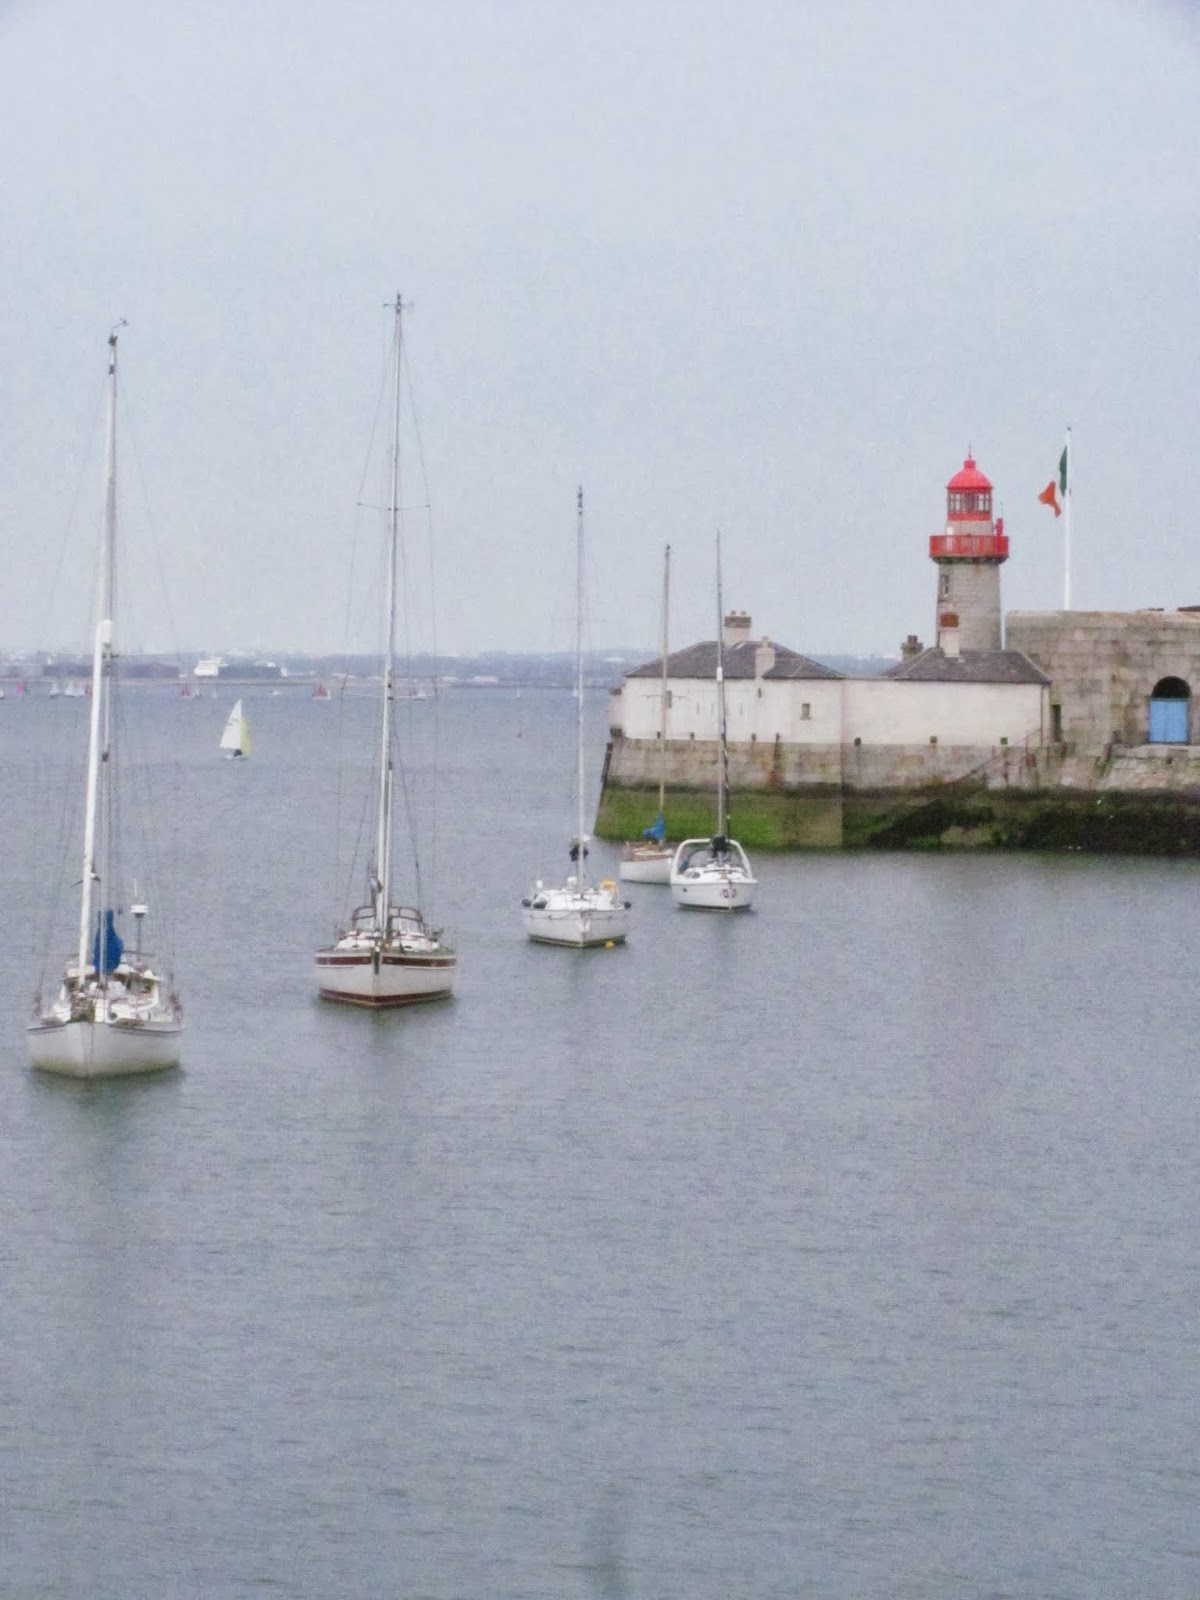 Sailboats exit the harbor past the red lighthouse at Dun Laoghaire, Co. Dublin, Ireland